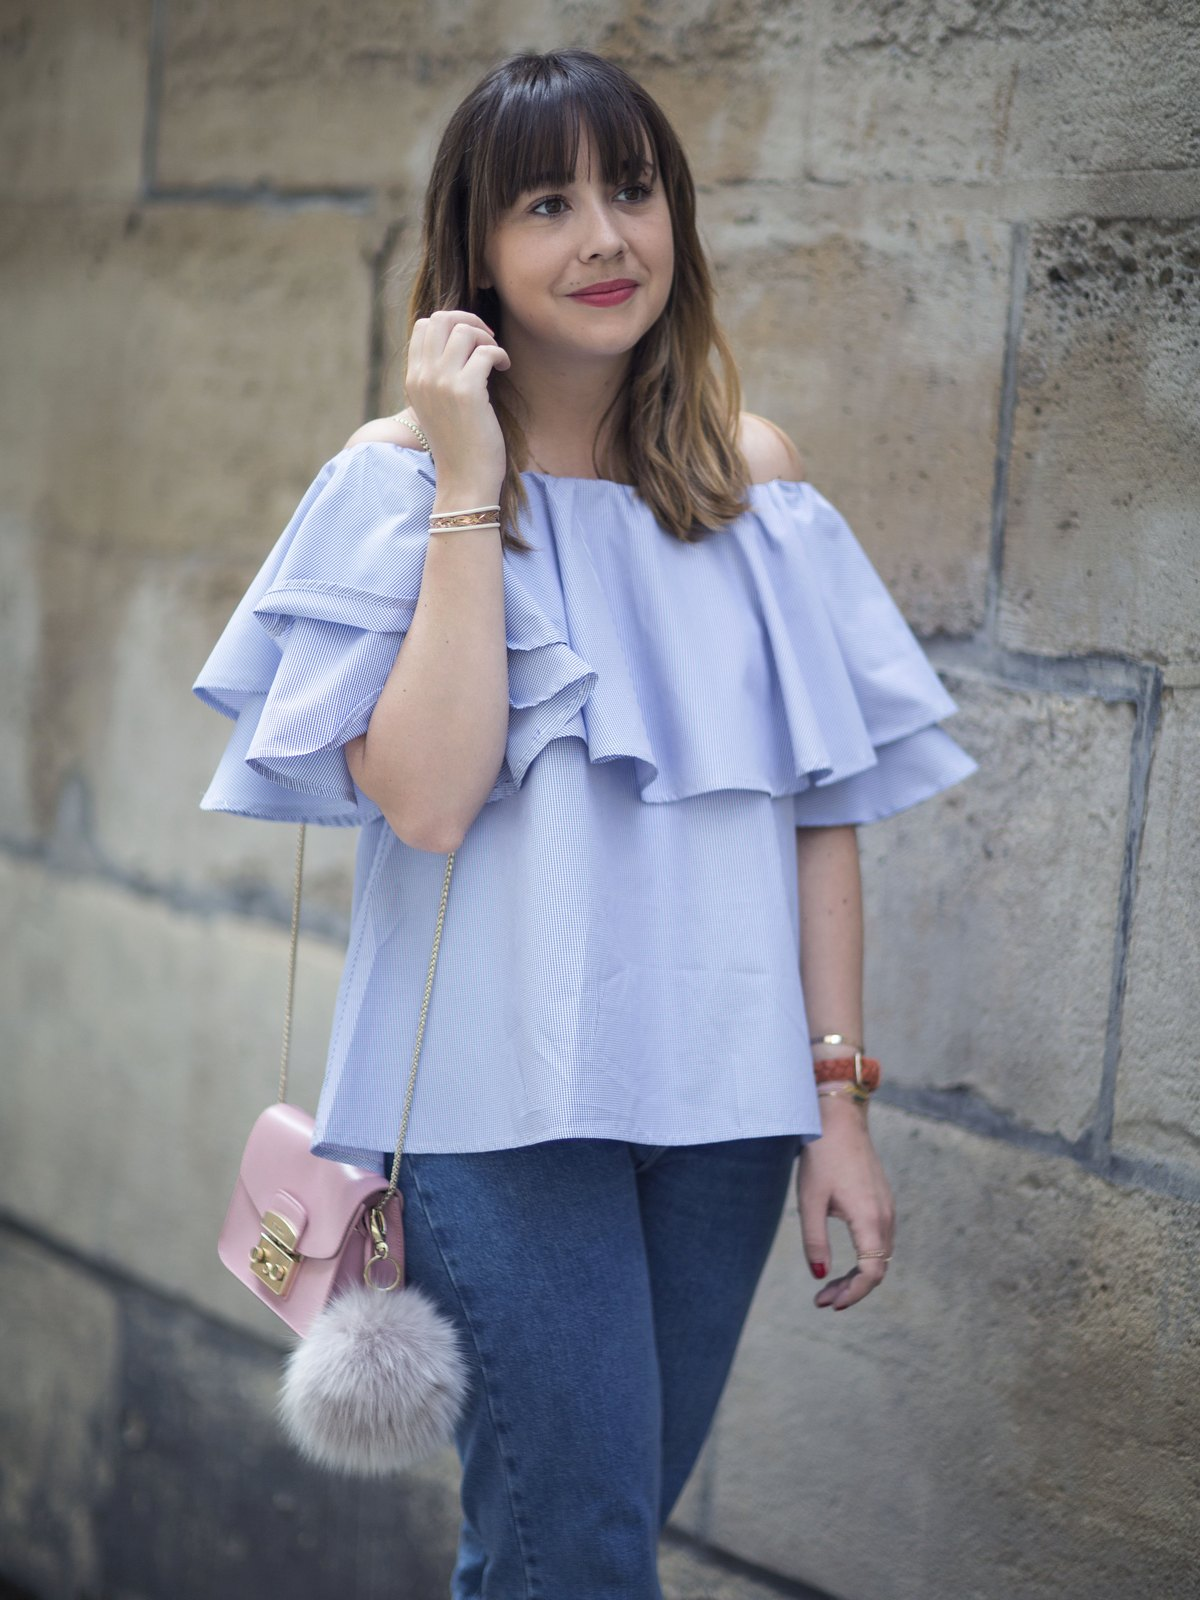 Blog mode femme Paris - Du style, Madame - Streetstyle - top bardot - mom jean